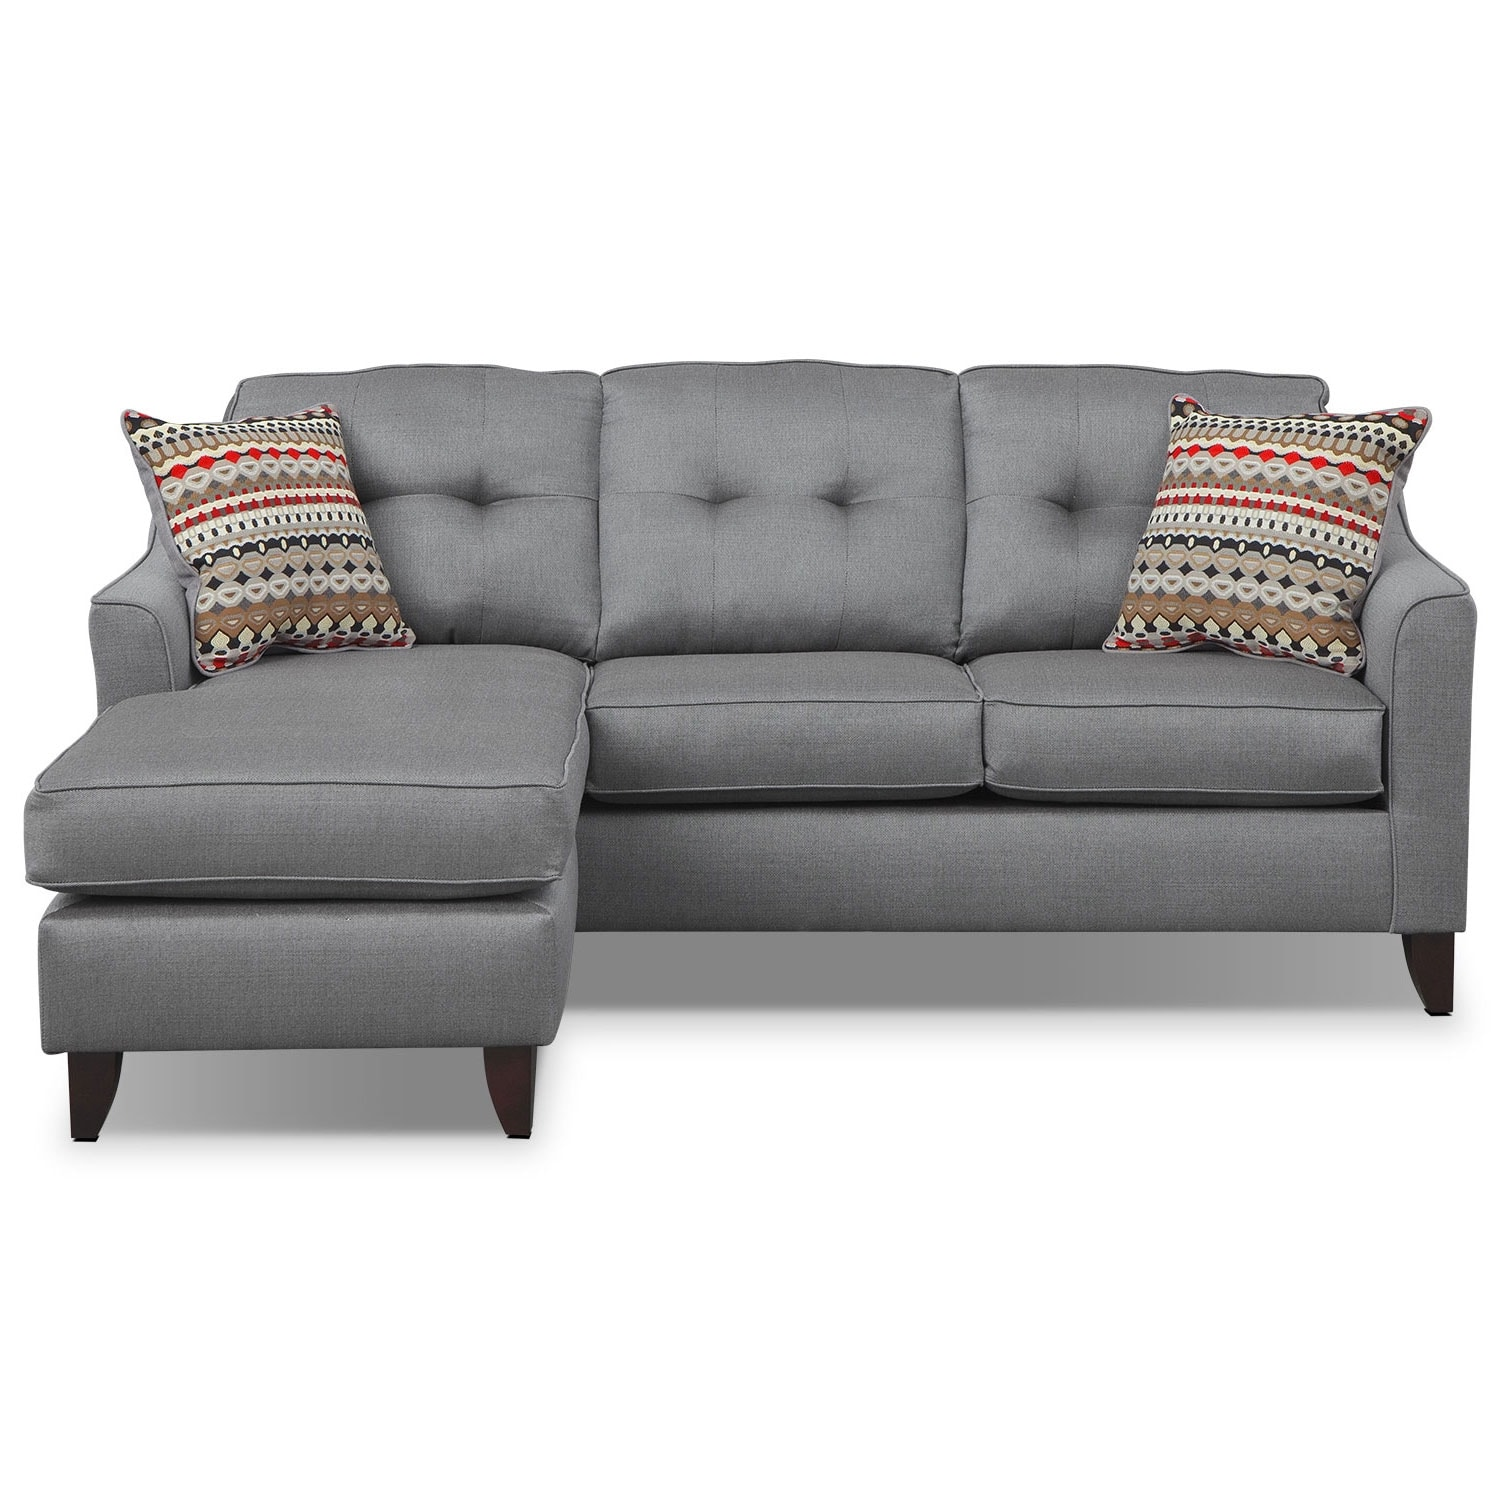 Marco Gray Chaise Sofa  Value City Furniture